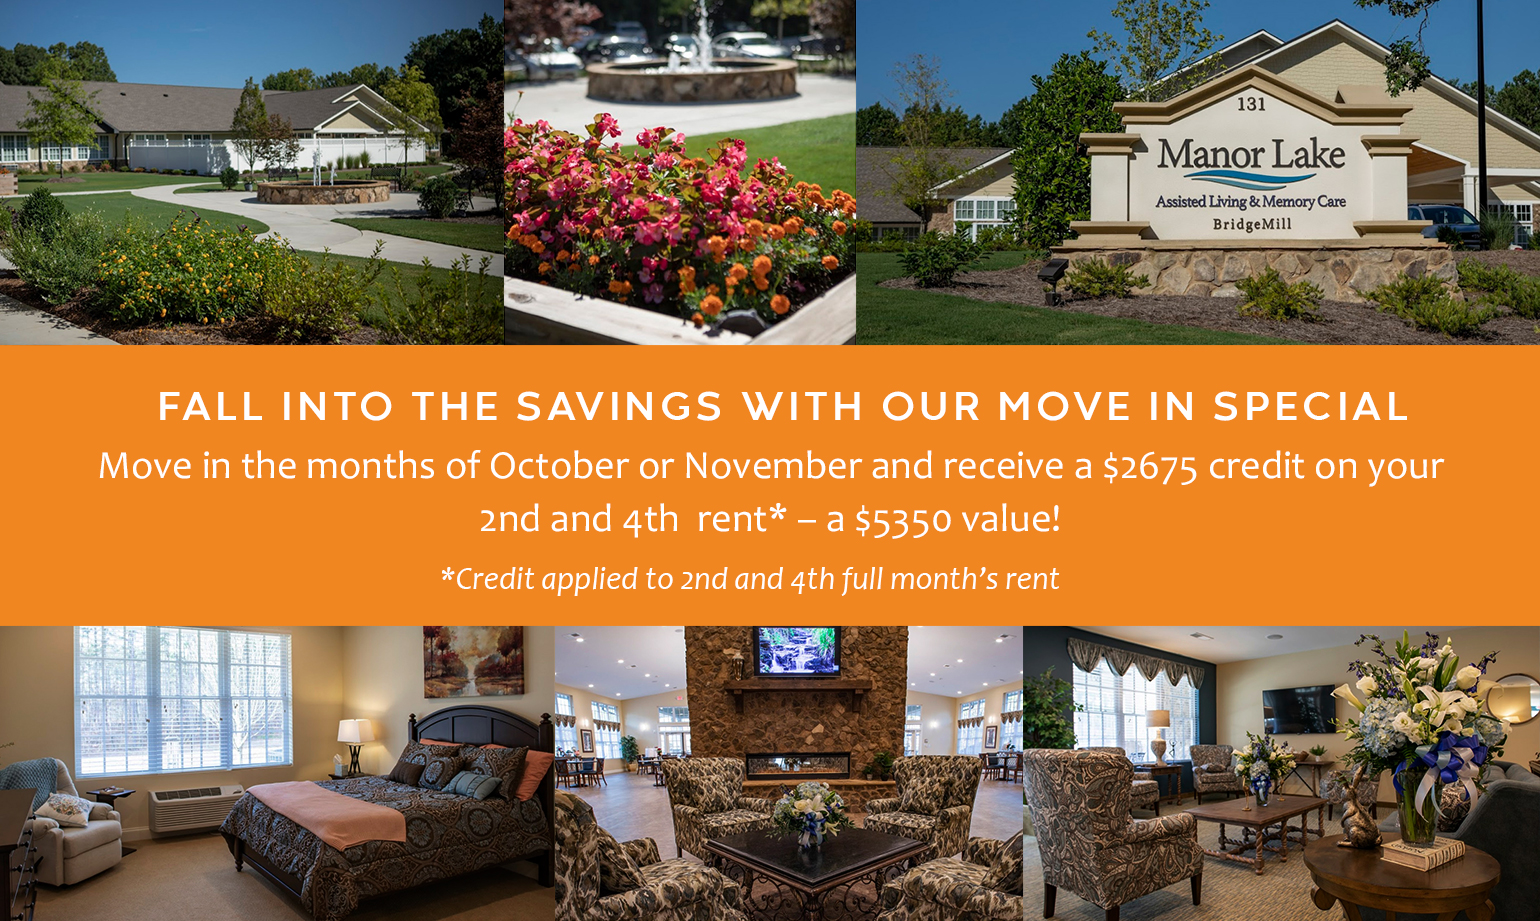 Fall into the savings with our move in special